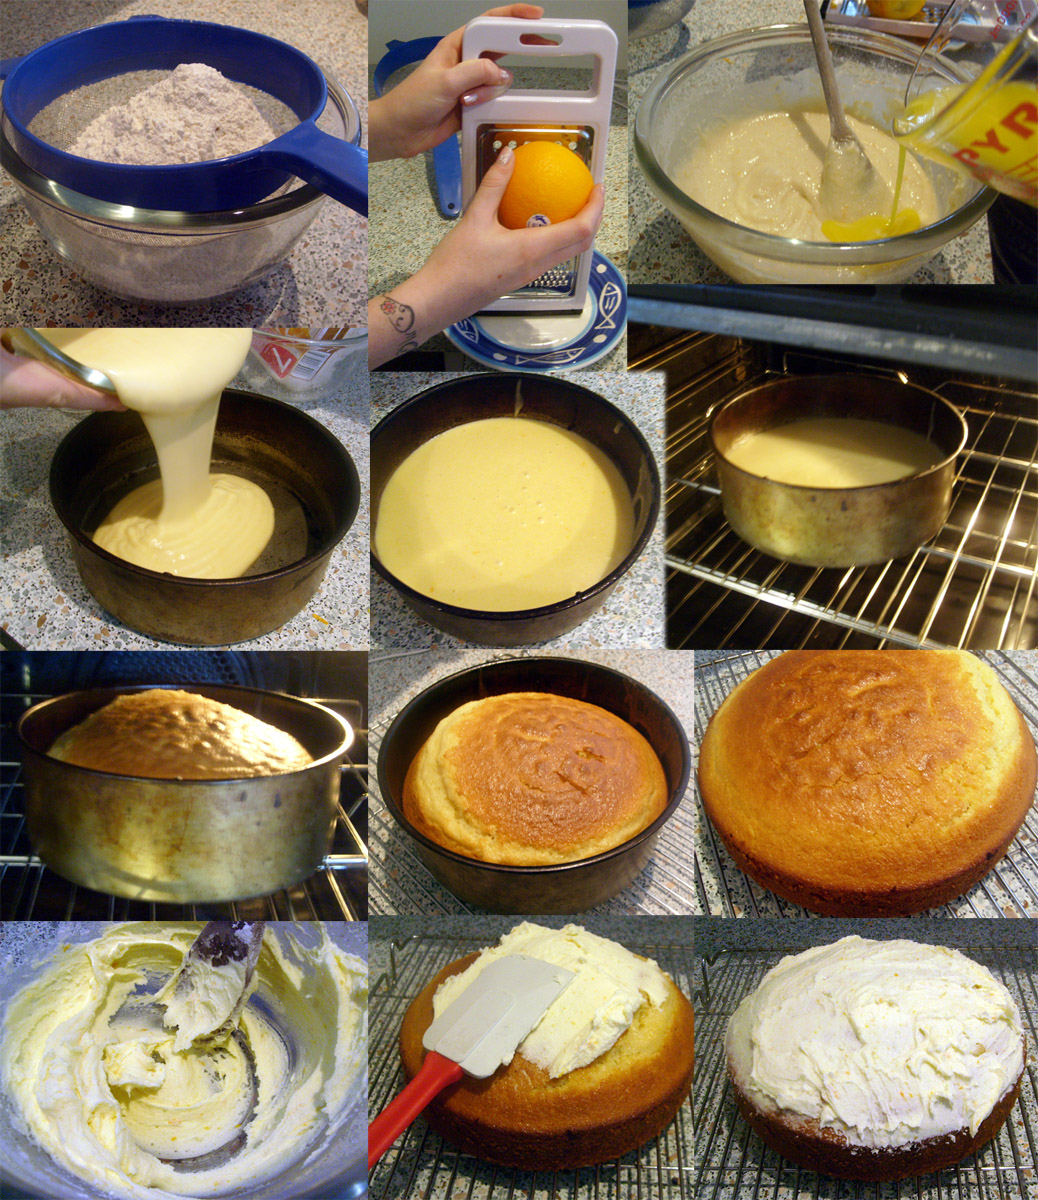 Essays on how to bake a cake